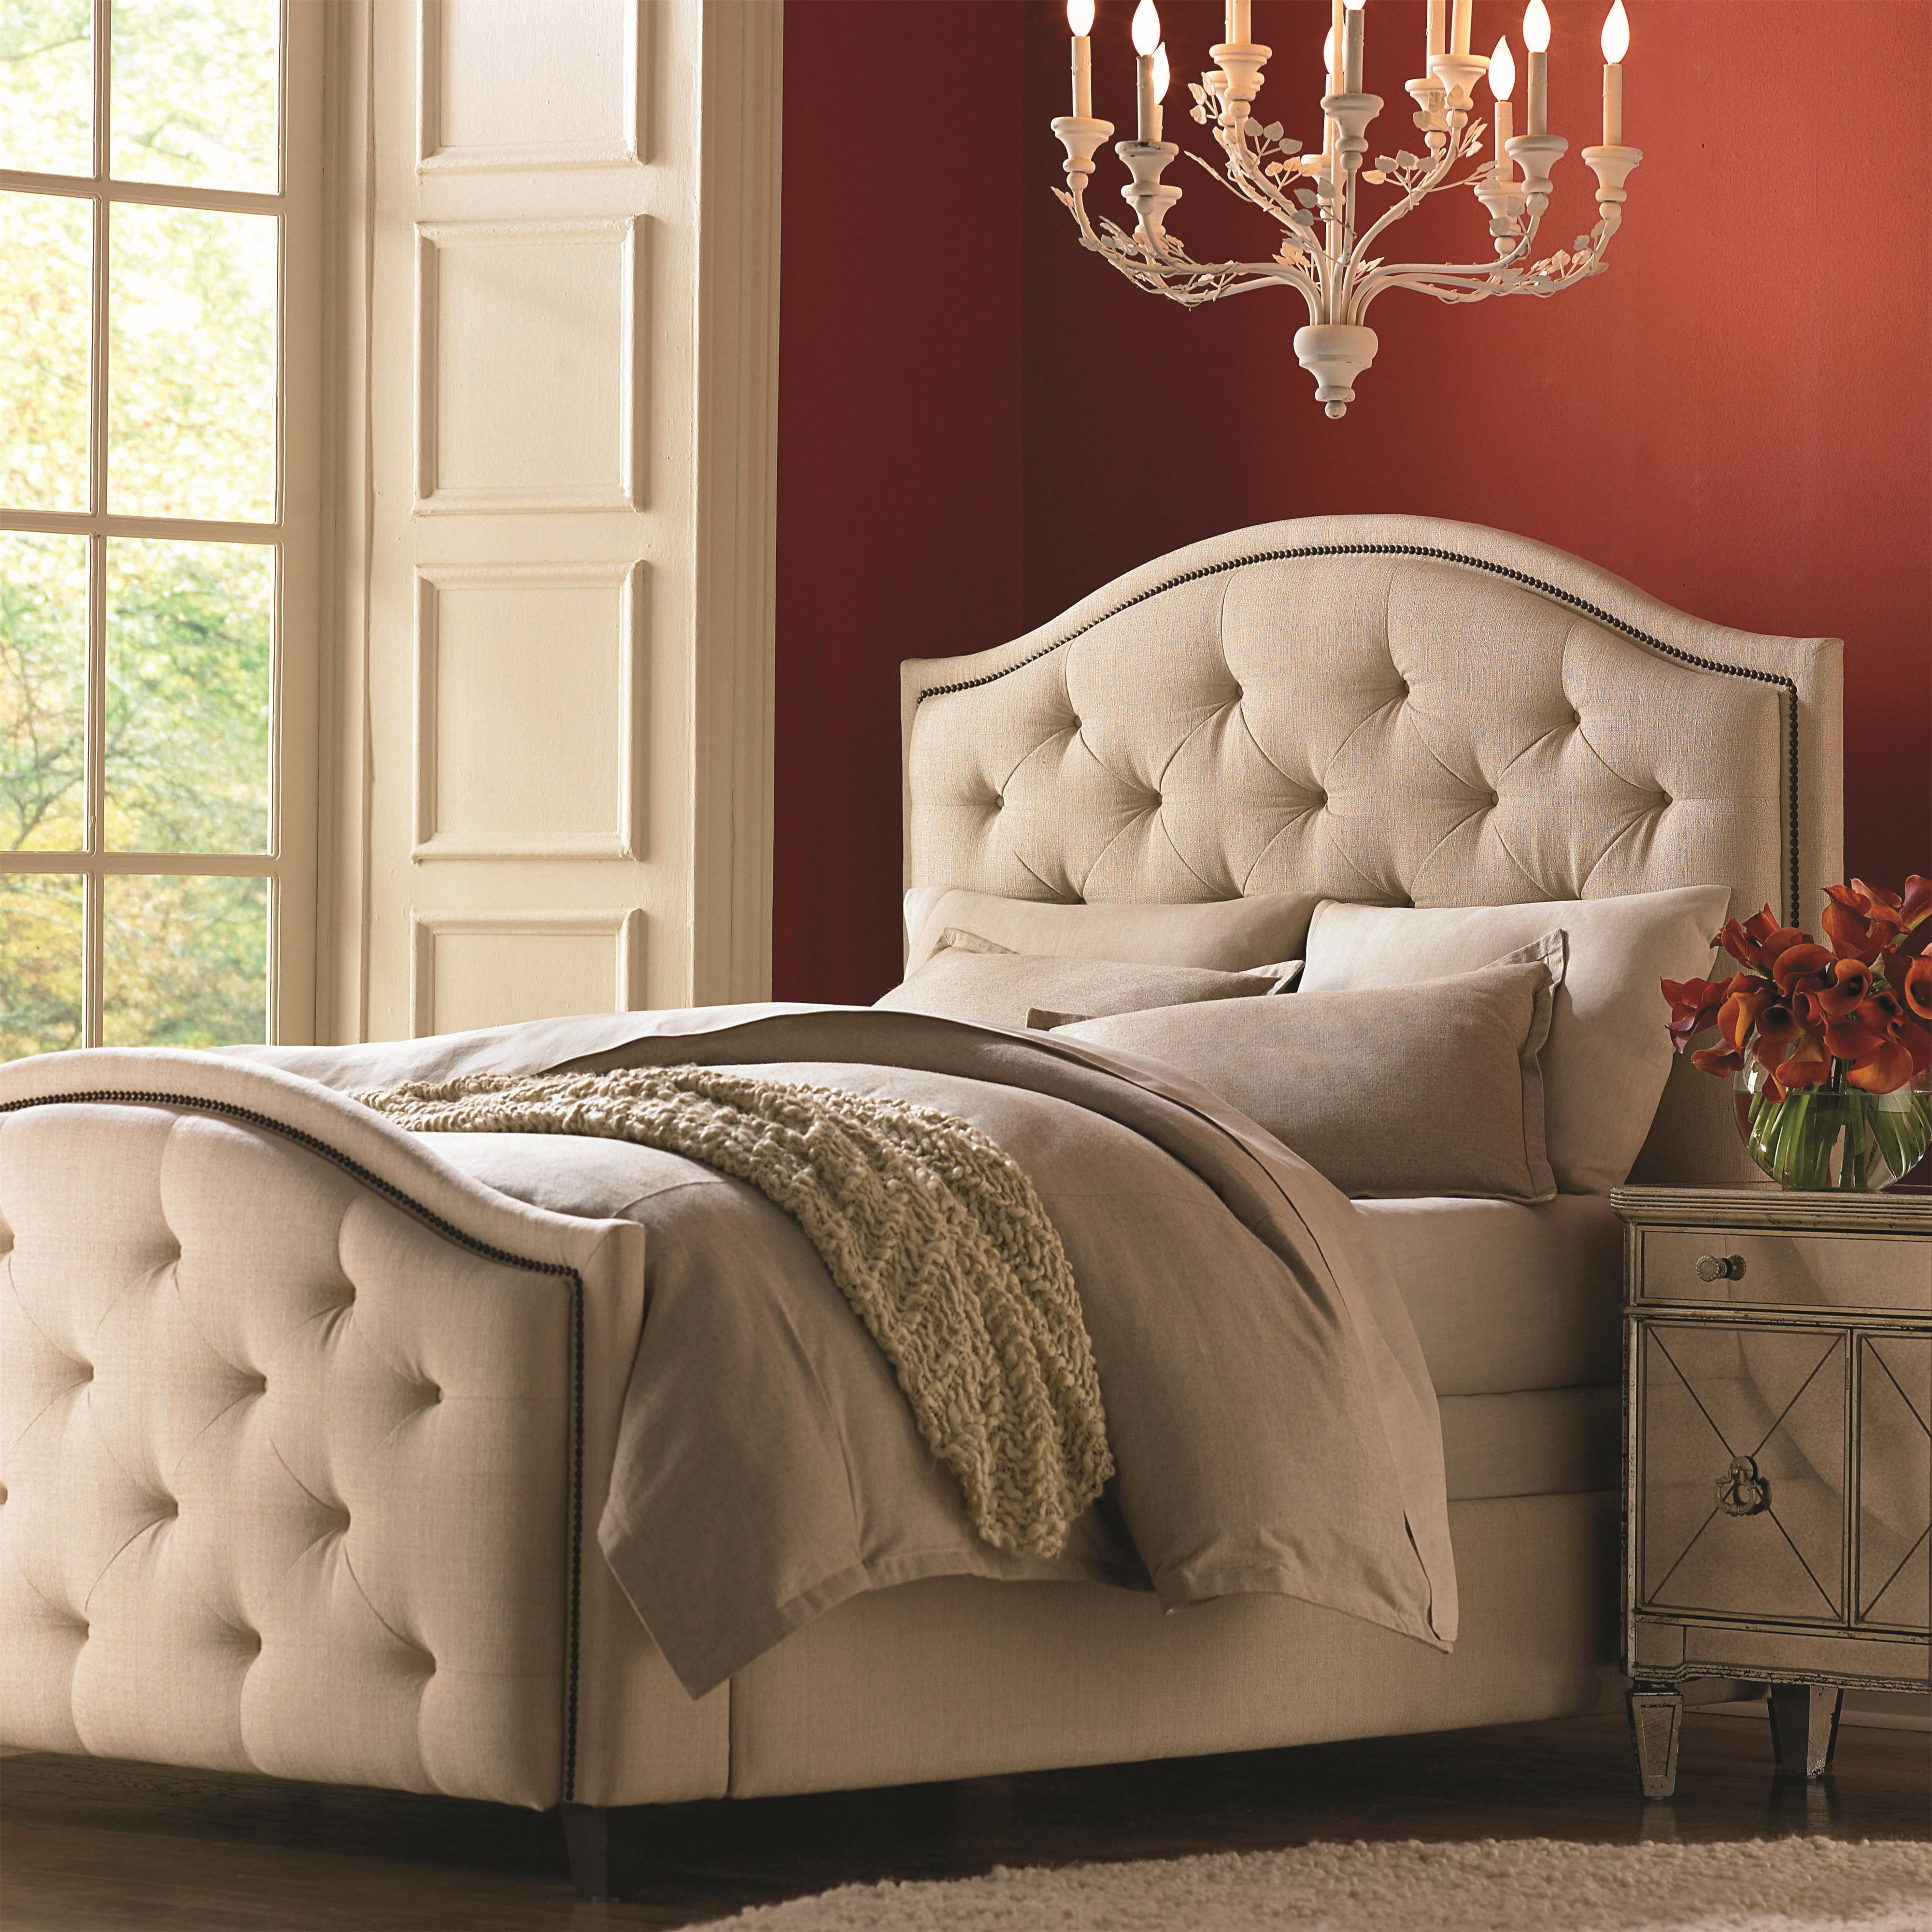 Bassett Custom Upholstered Beds Queen Vienna Upholstered Headboard And High Footboard Bed Dunk